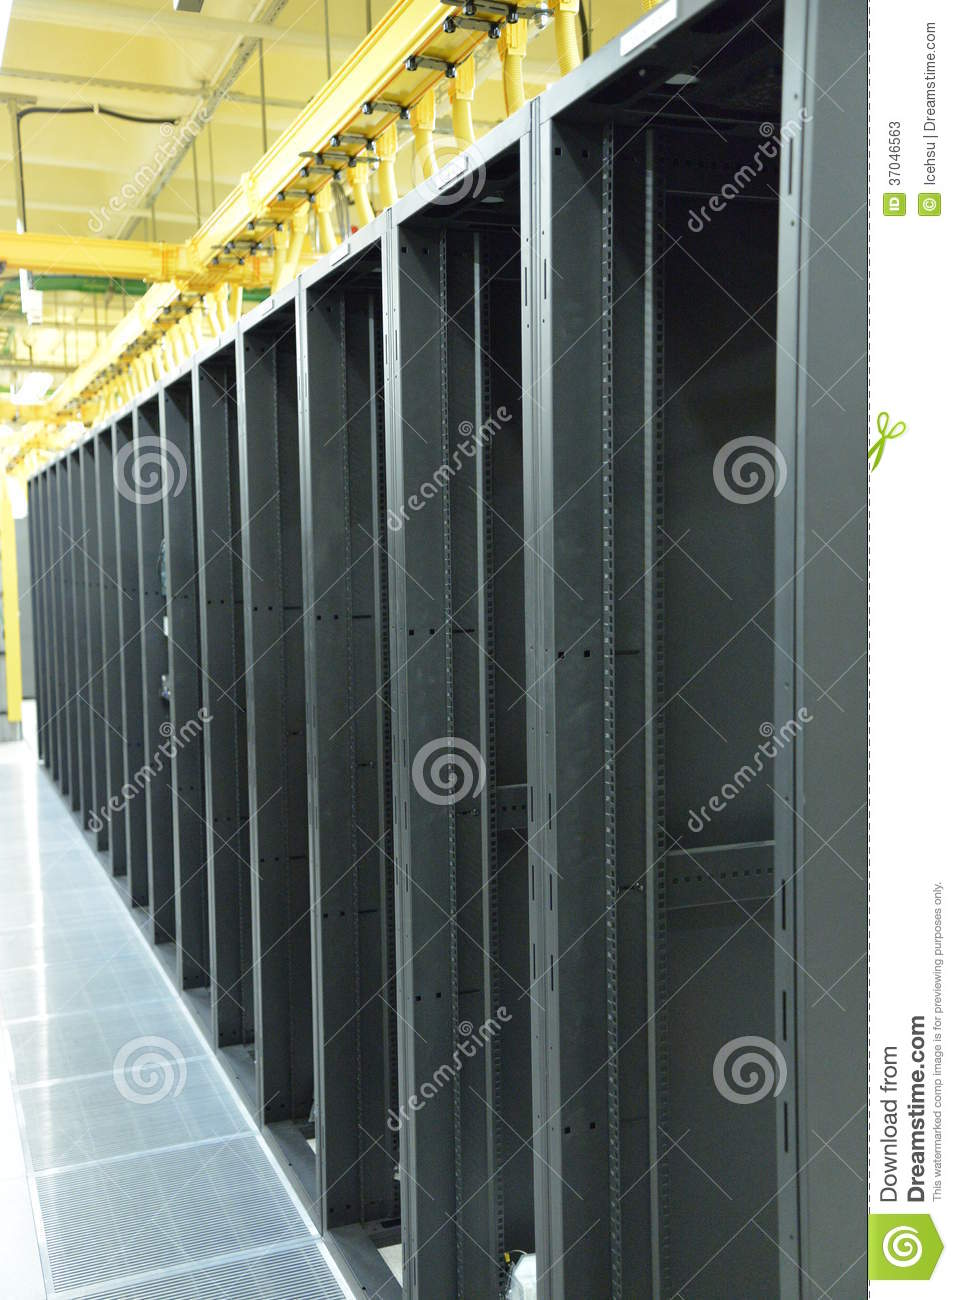 Empty data center racks stock photos image 37046563 for Data center setup